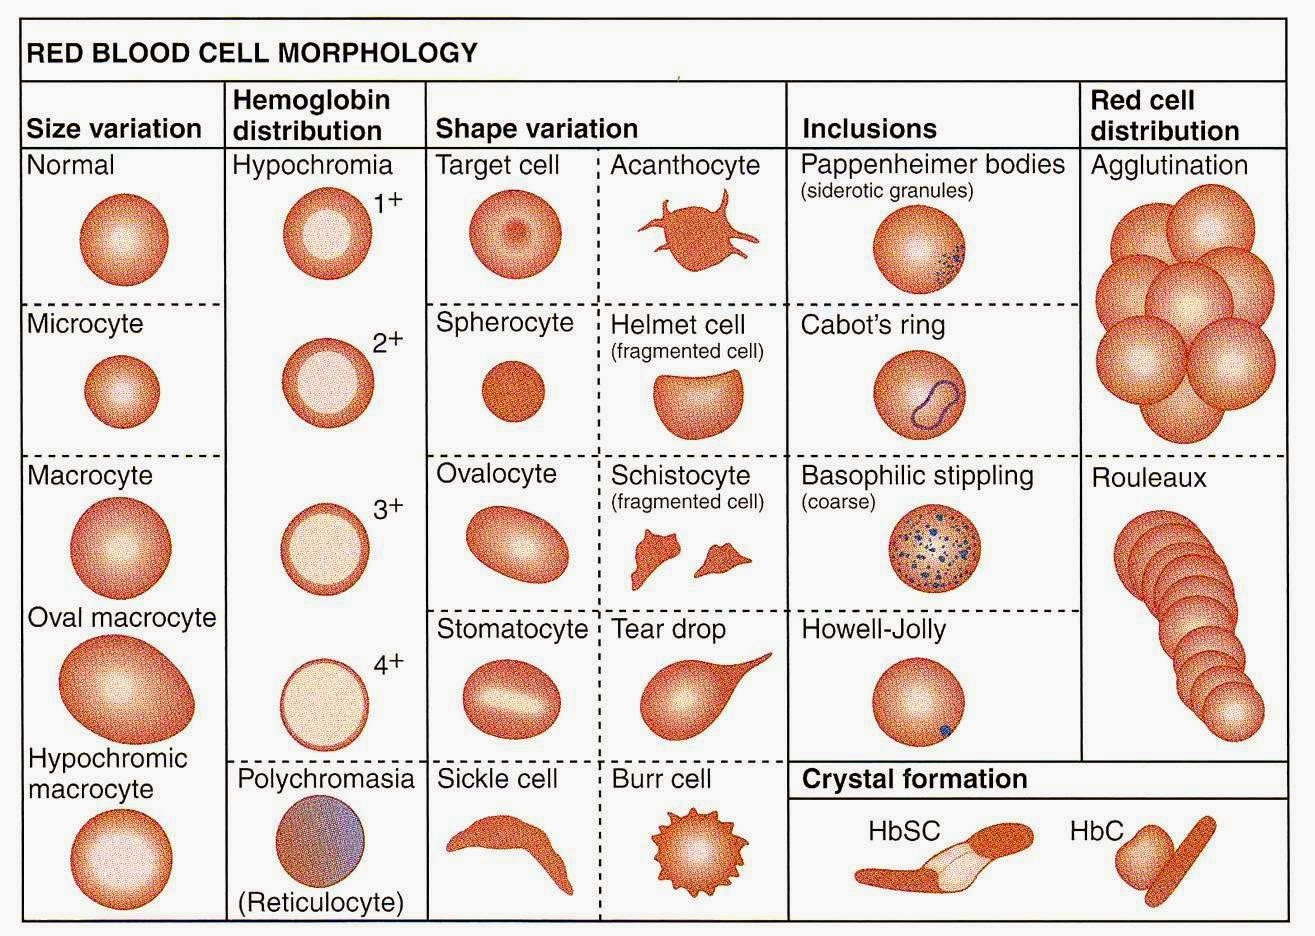 morphology of human blood Morphology: morphology, in biology, the study of the size, shape, and structure of animals, plants dutch microscopist antonie van leeuwenhoek used the recently invented microscope to describe red blood cells, human sperm cells, bacteria.